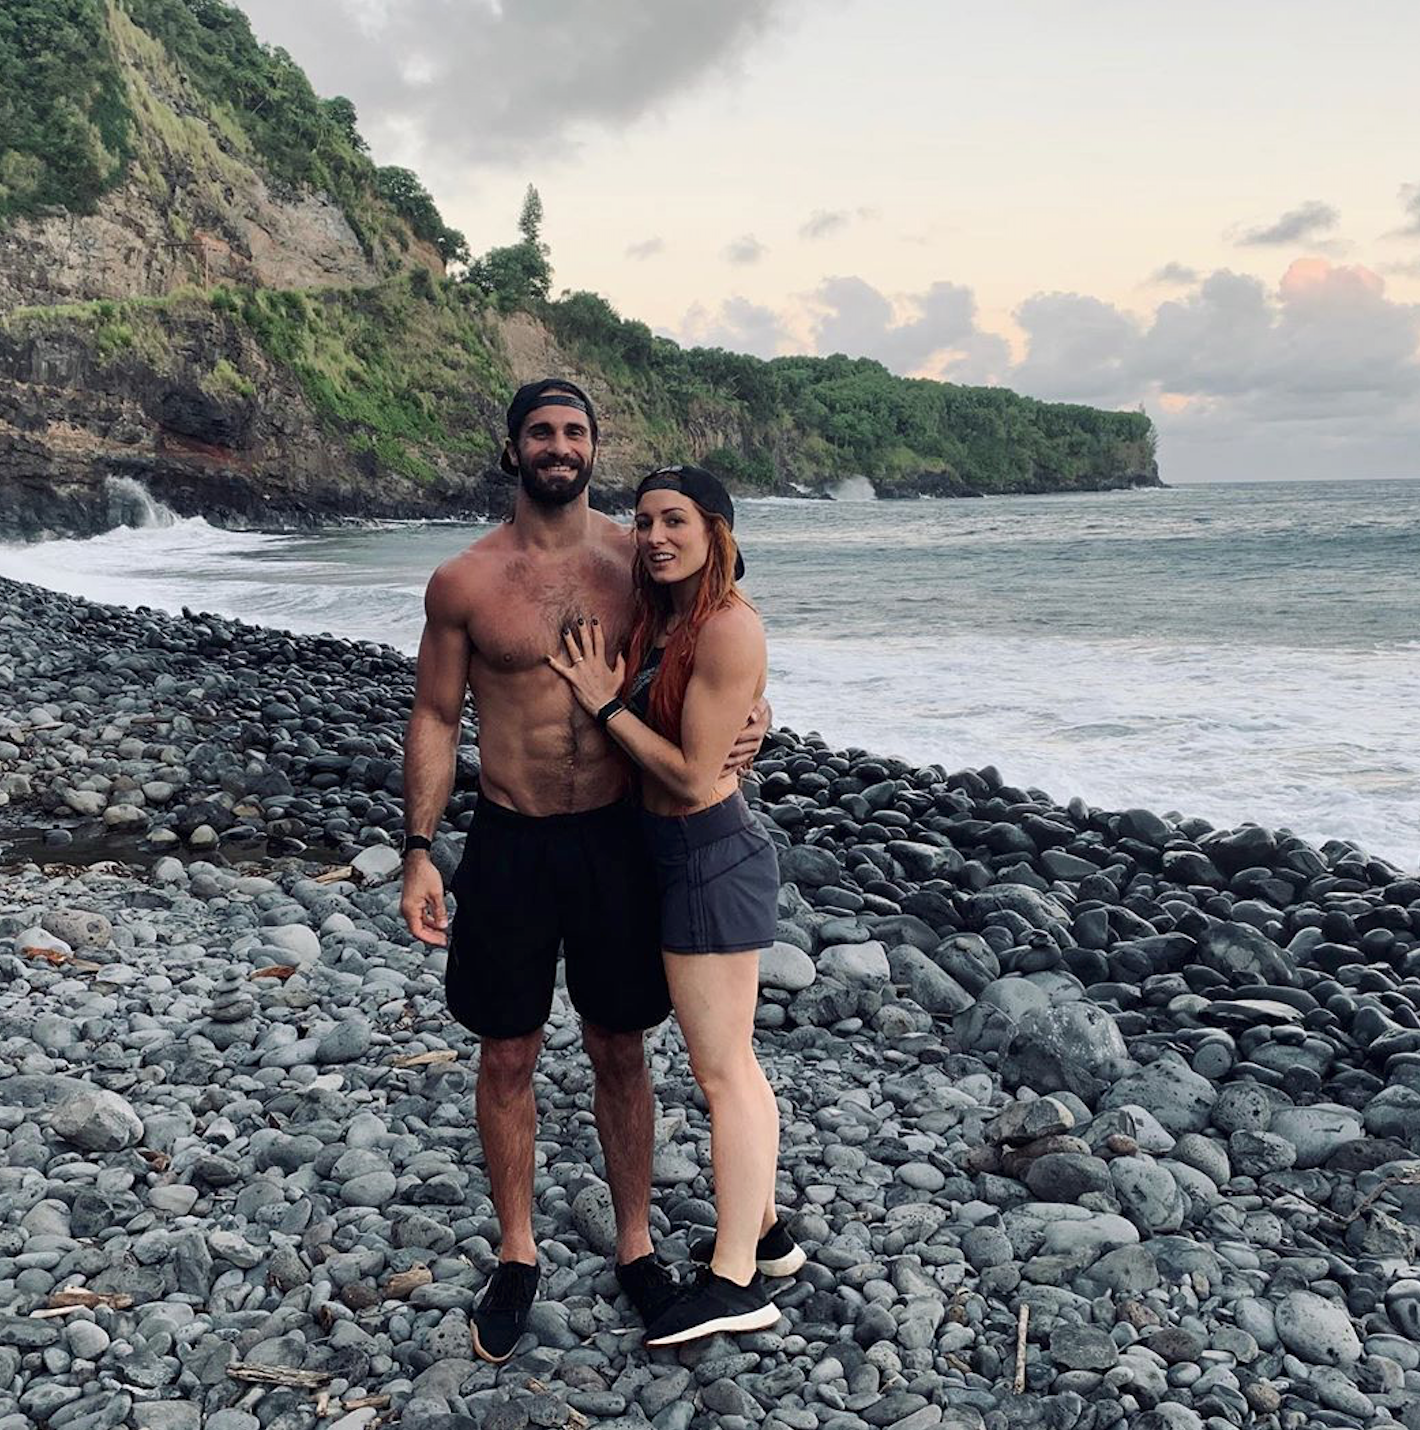 WWE's Seth Rollins and Becky Lynch Engaged